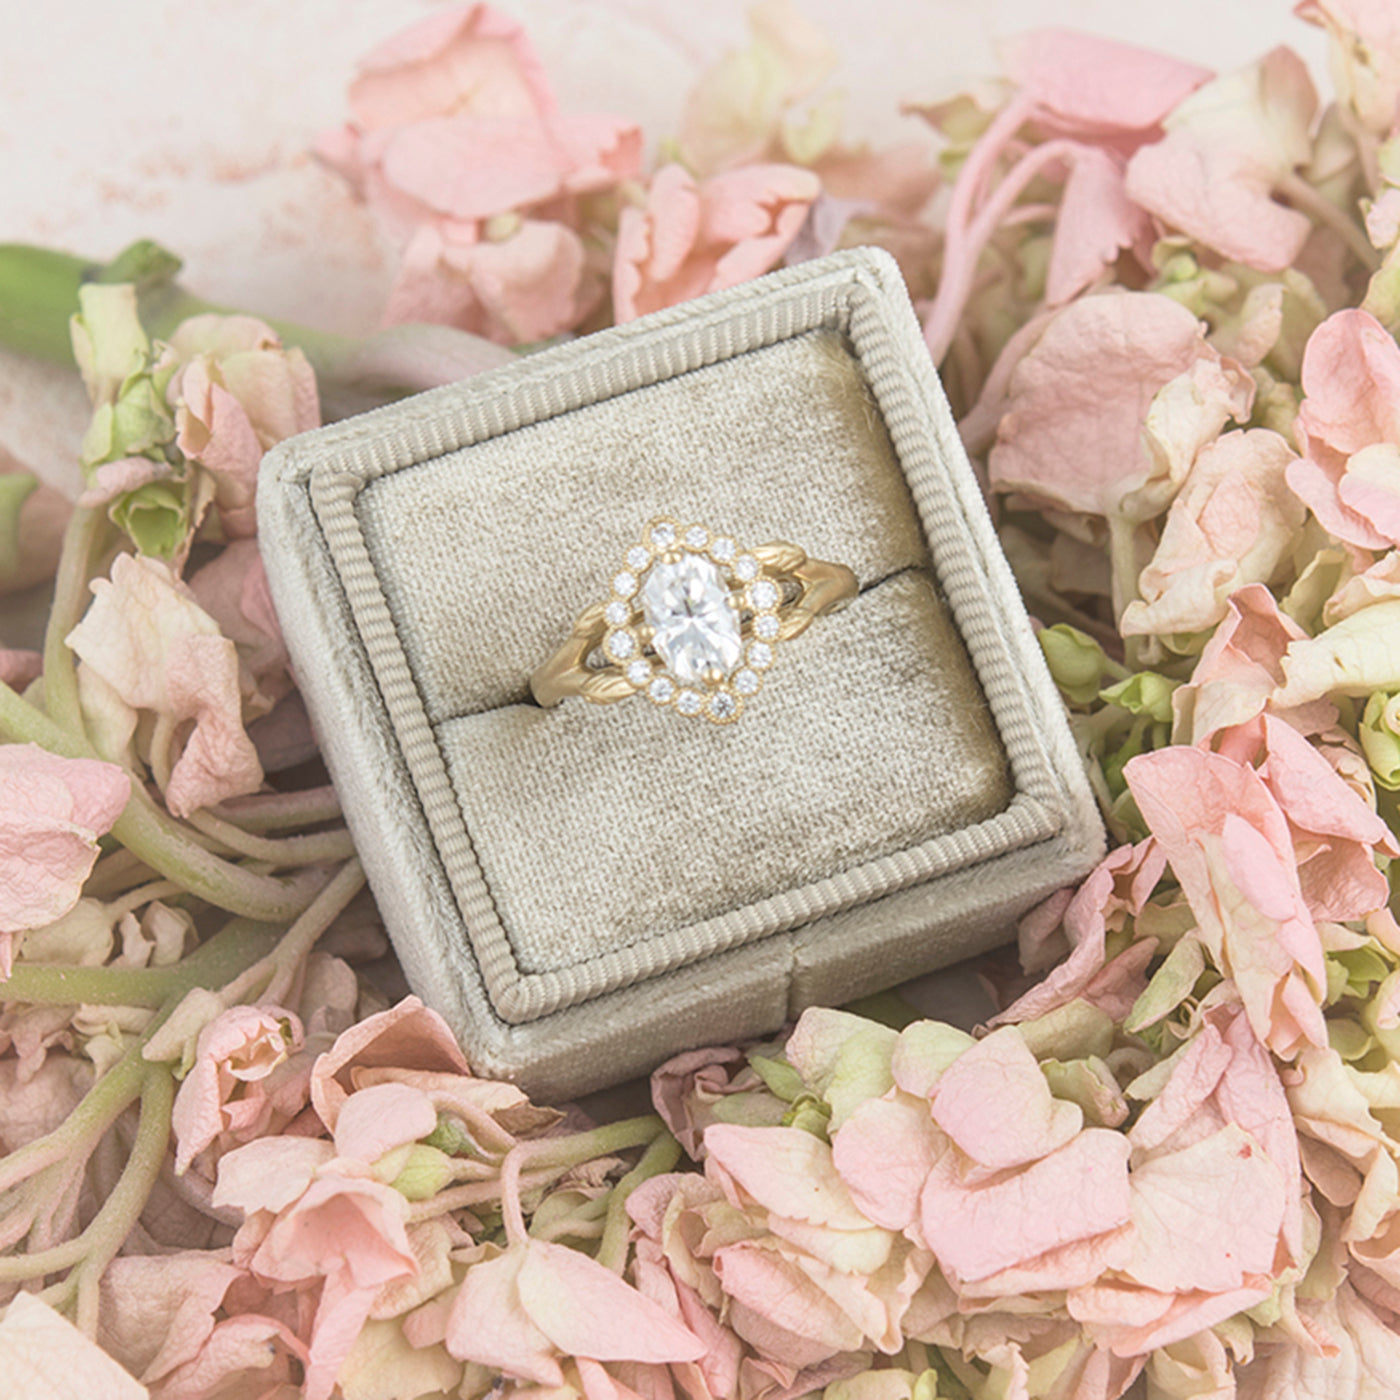 unique vintage oval halo engagement ring